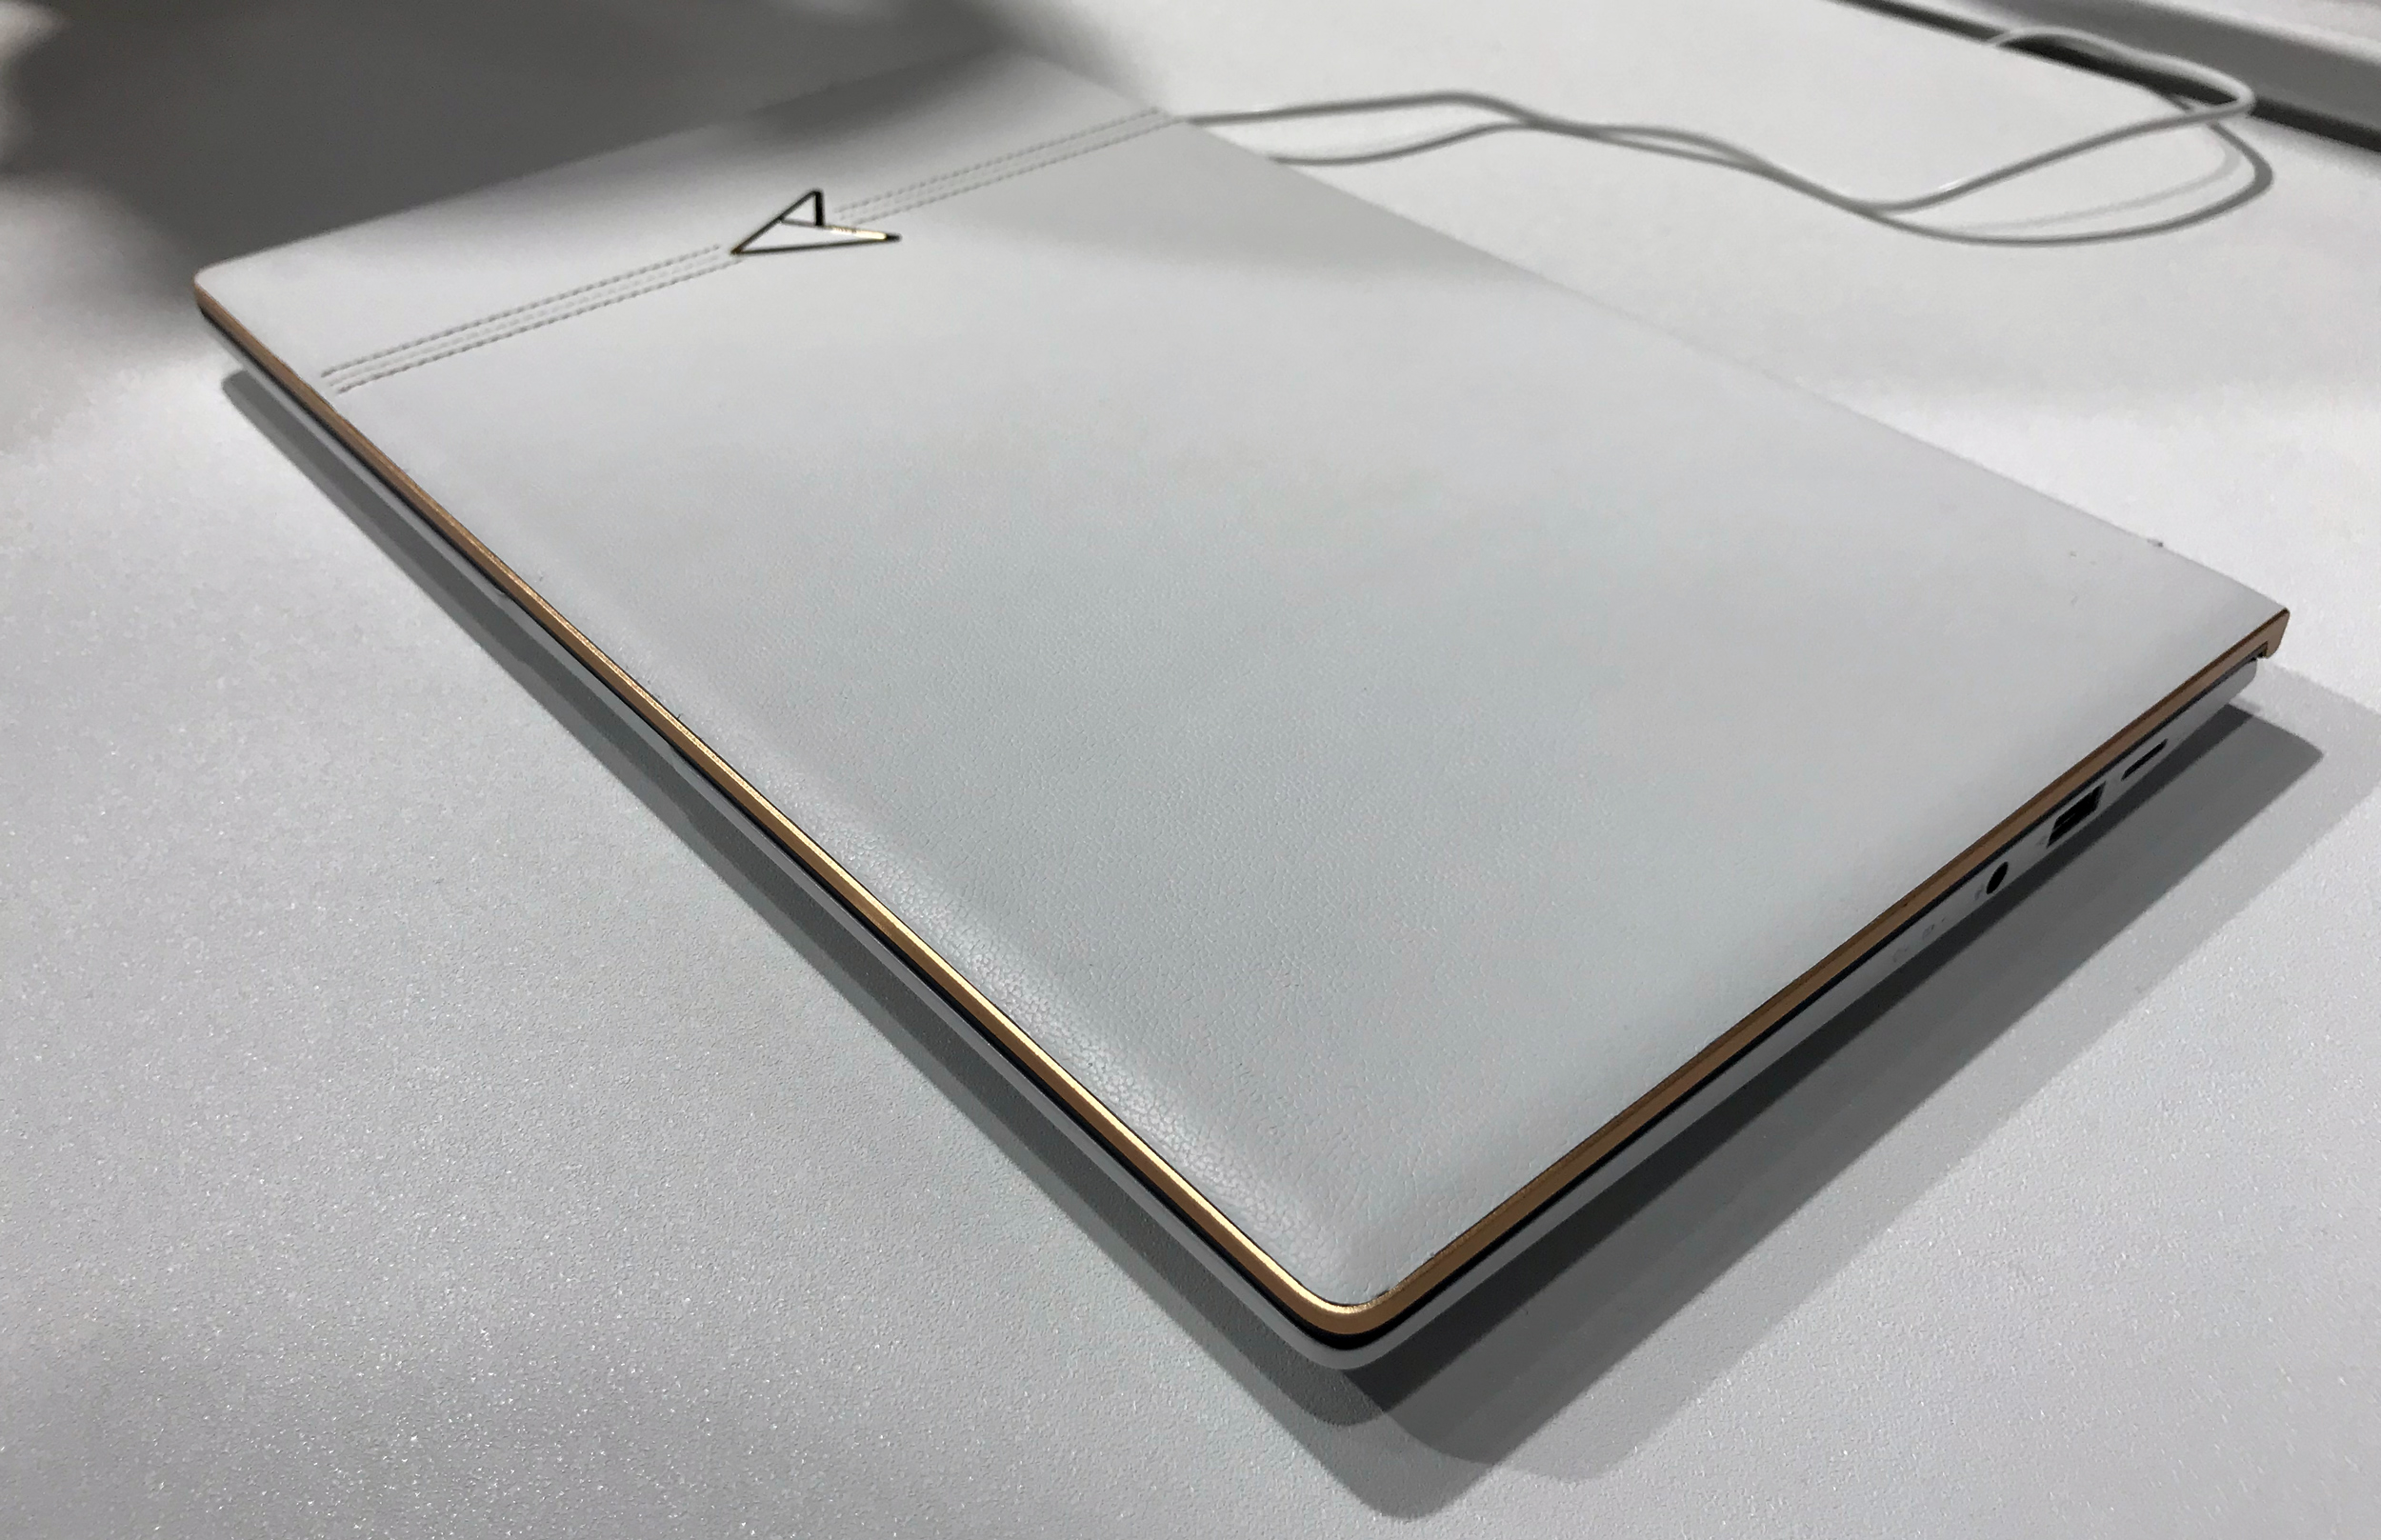 asus zenbook edition 30 price